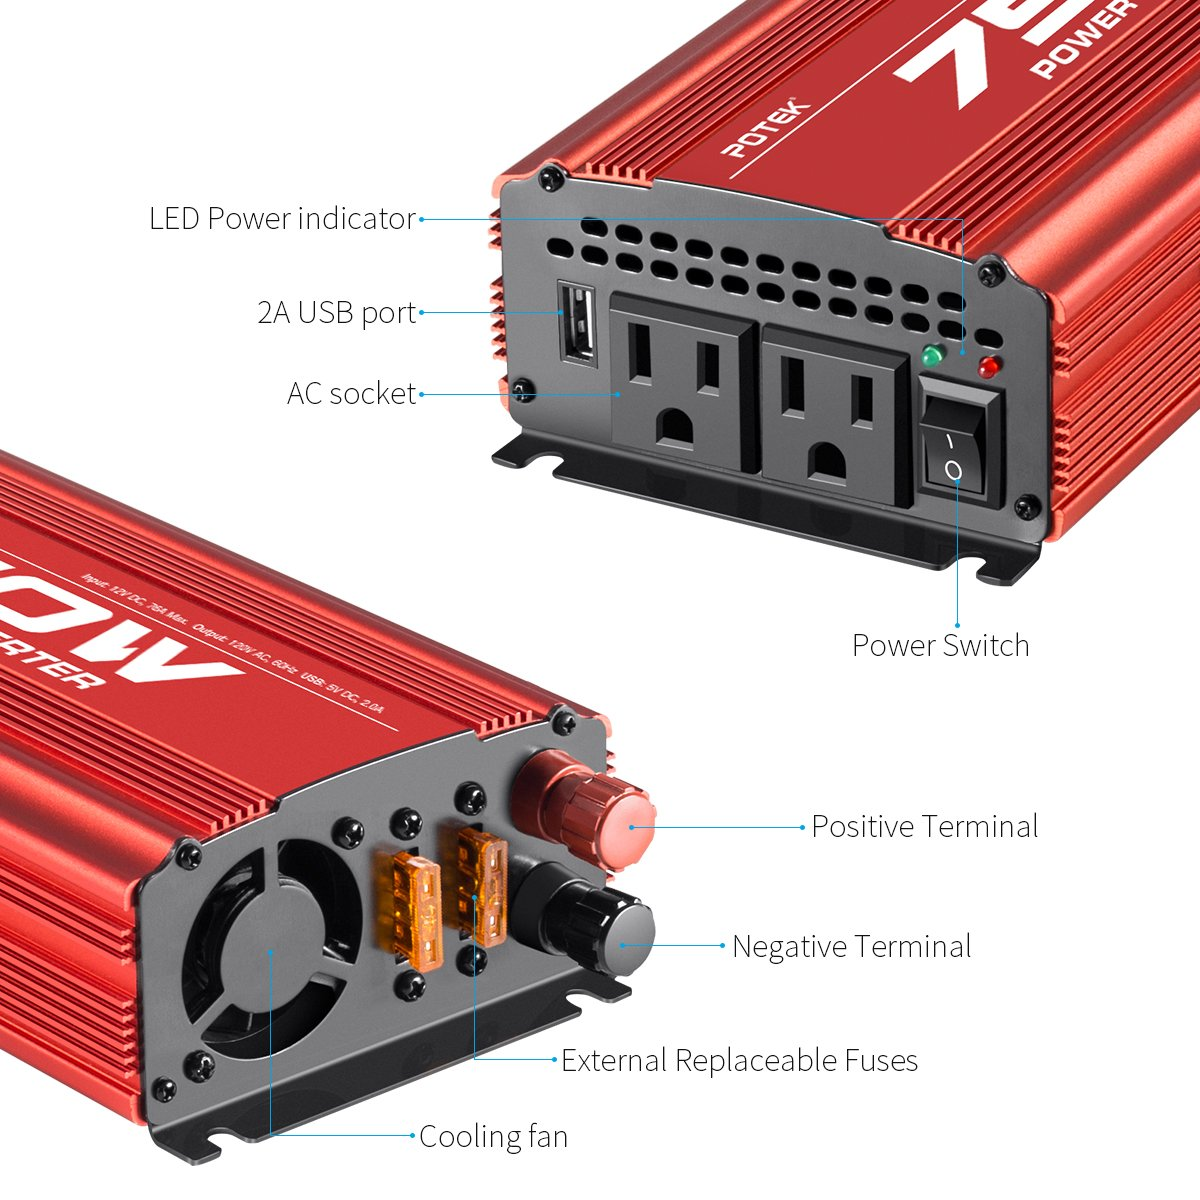 POTEK 500W Car Power Inverter DC 12V to AC 110V with 2 AC outlets and 2A USB Port